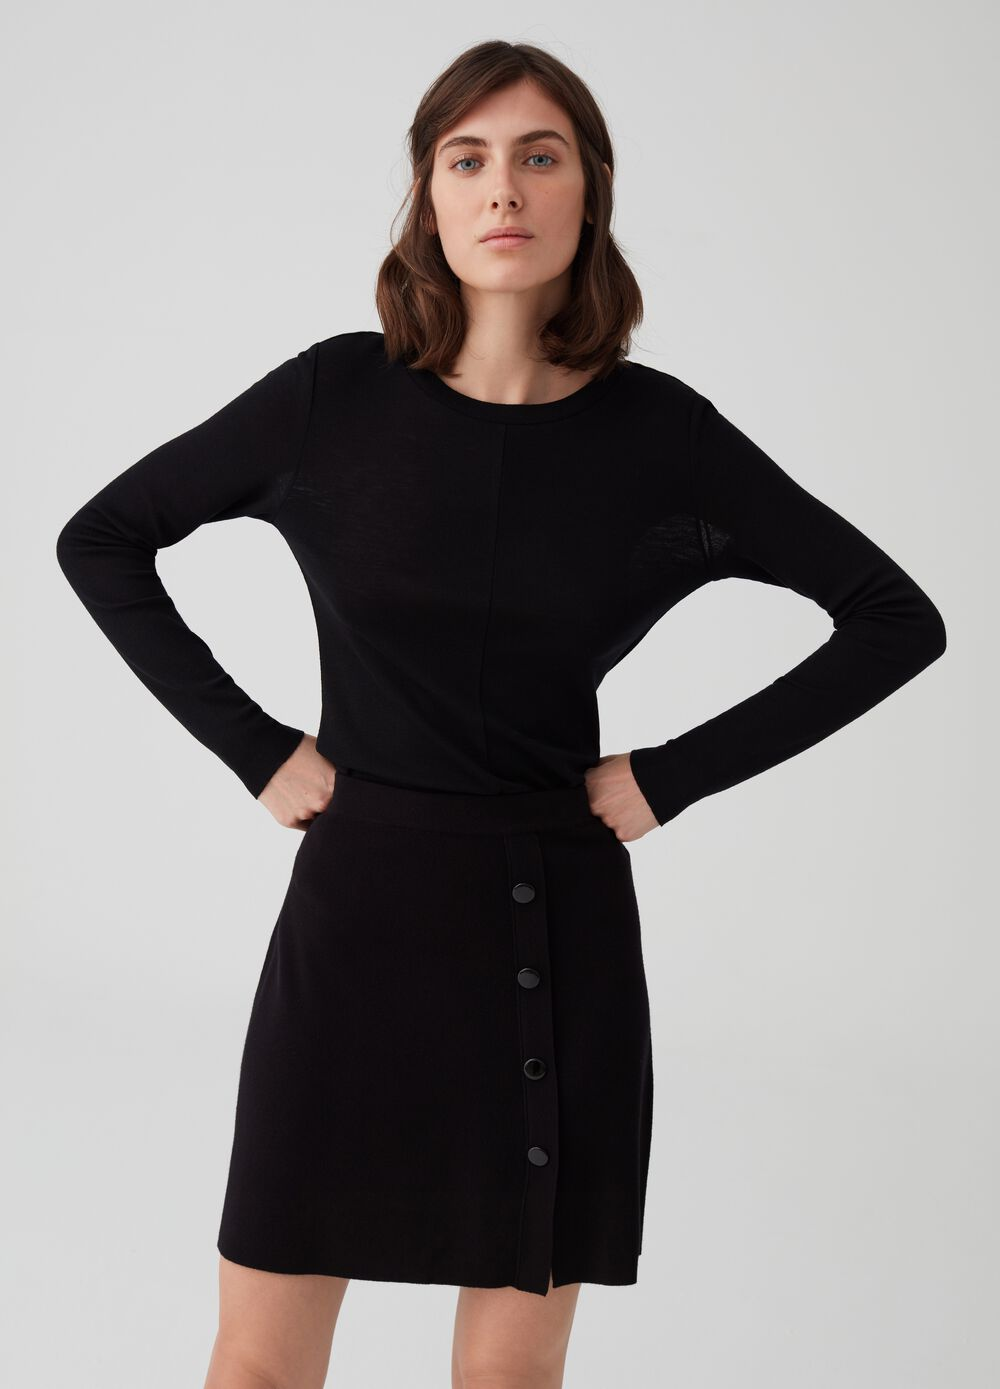 Long-sleeved T-shirt in 100% wool